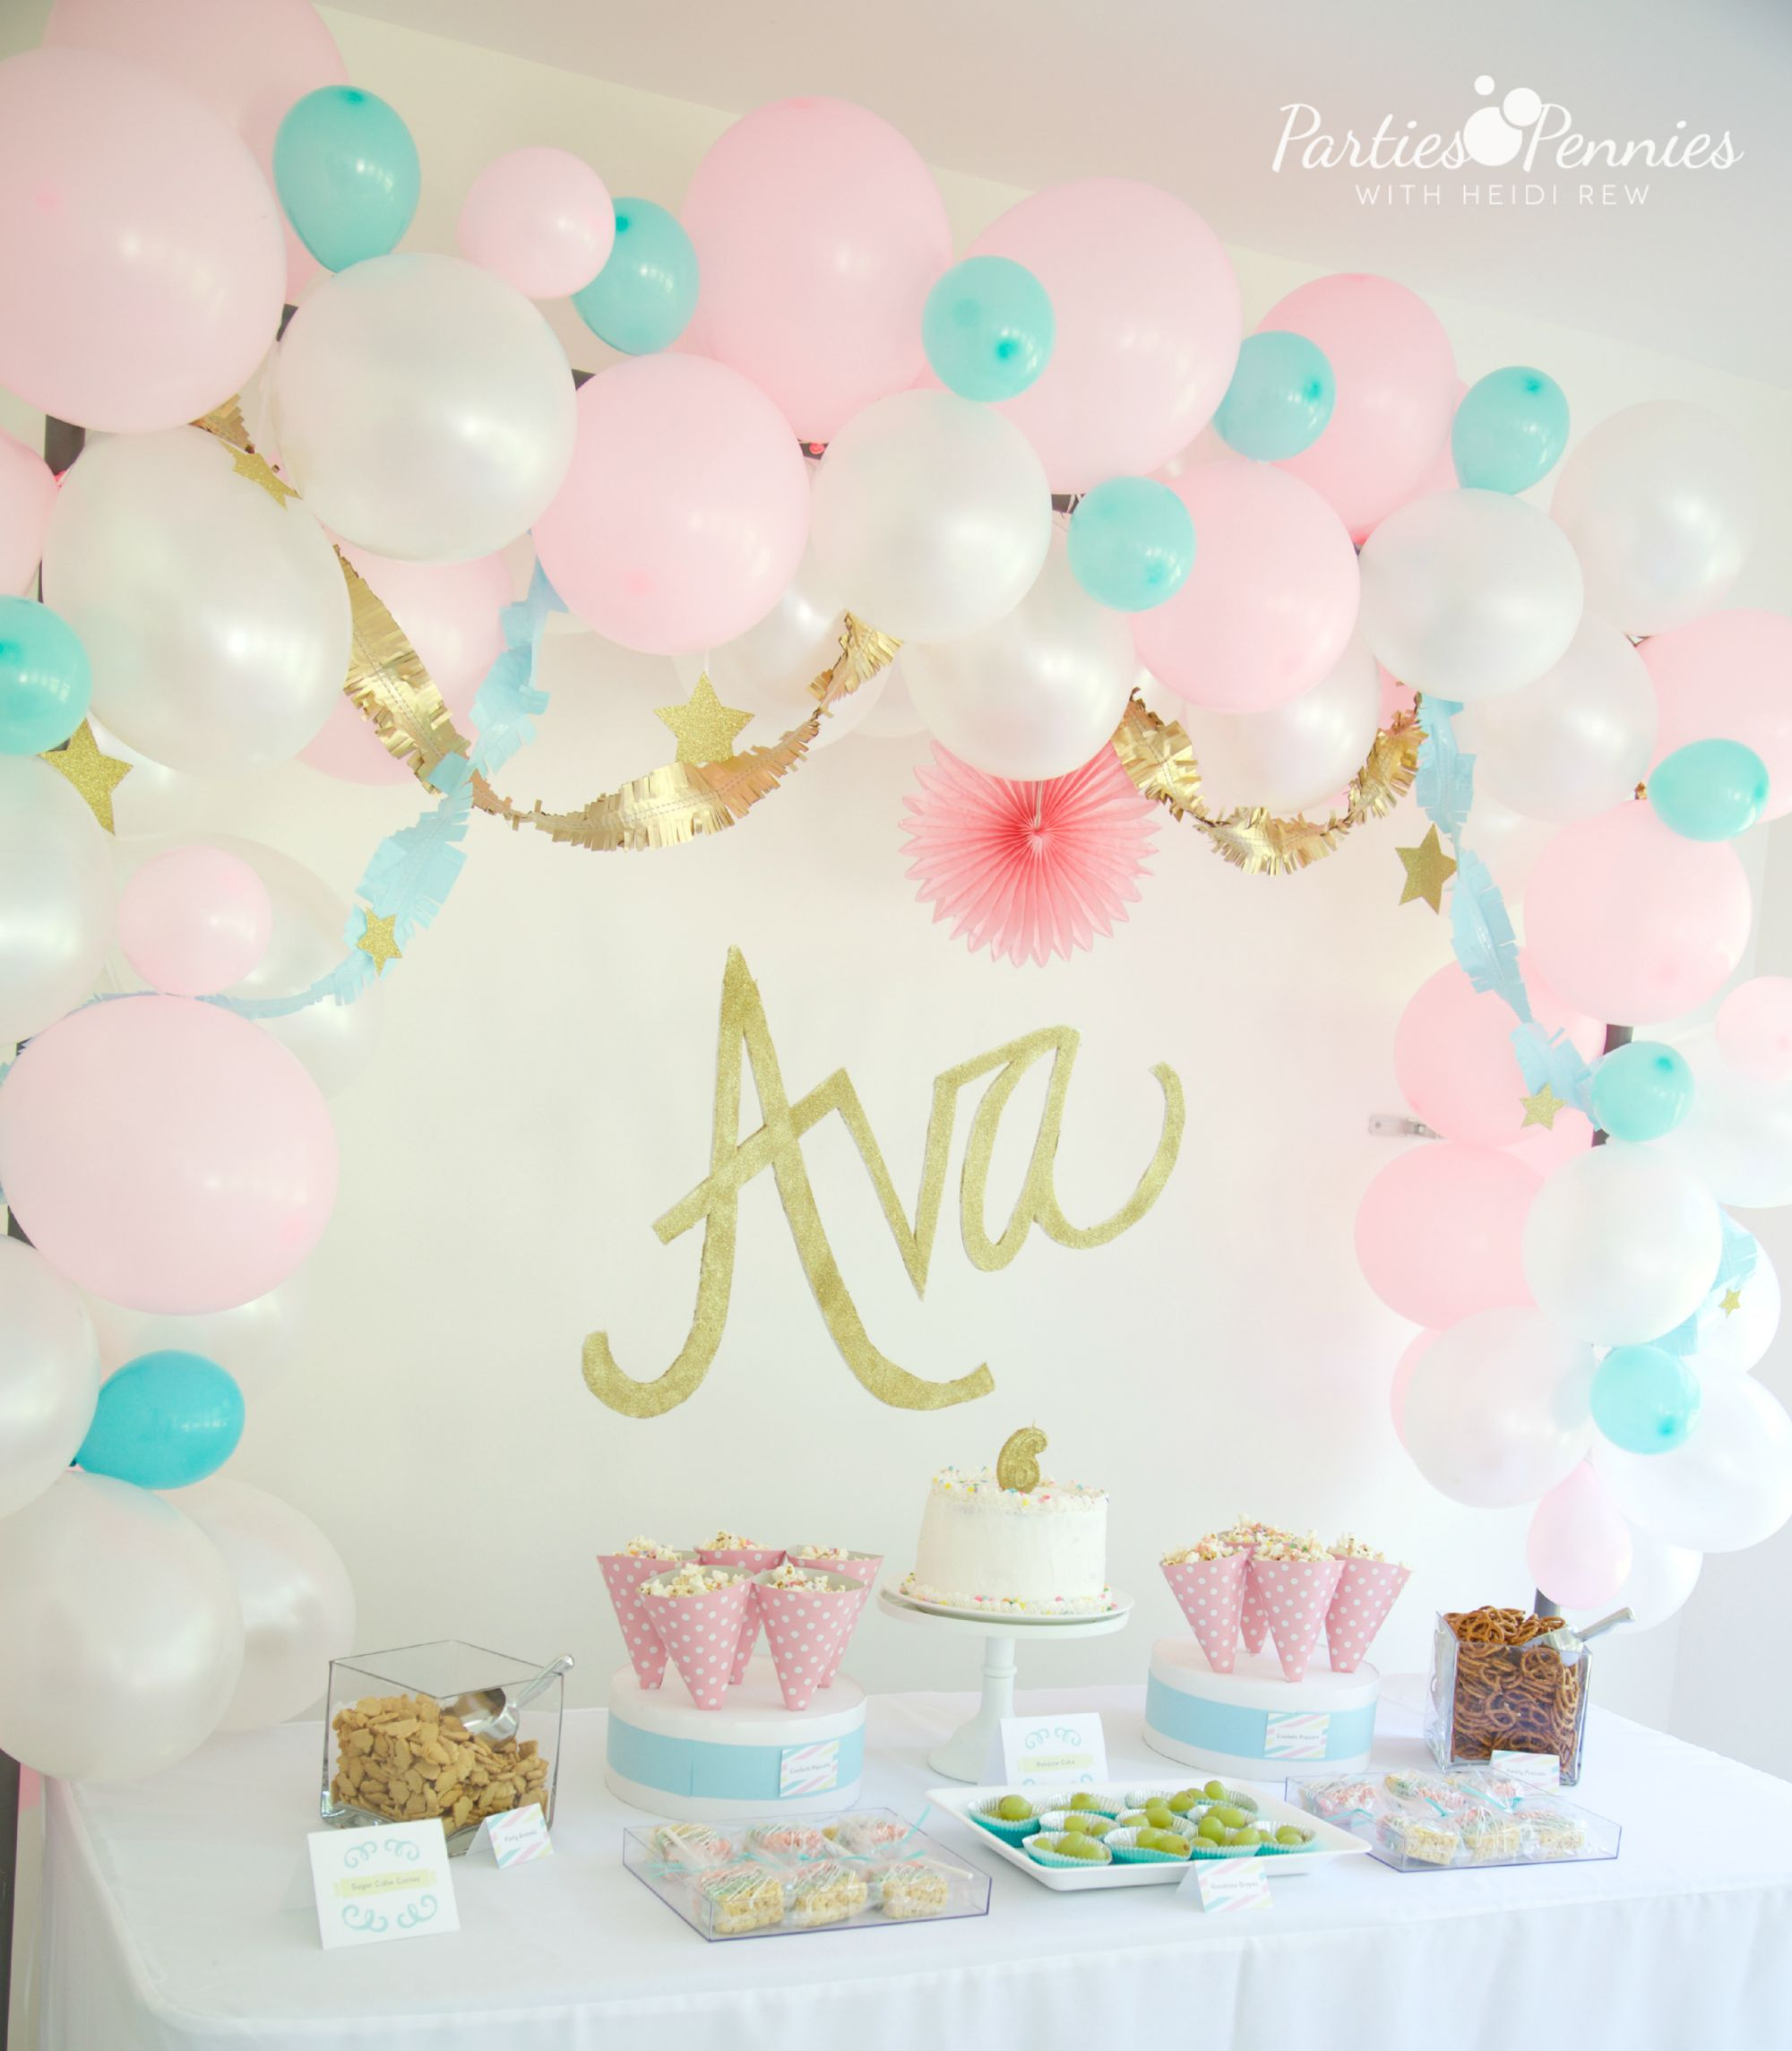 Diy photo backdrop parties for pennies for Backdrop decoration for birthday